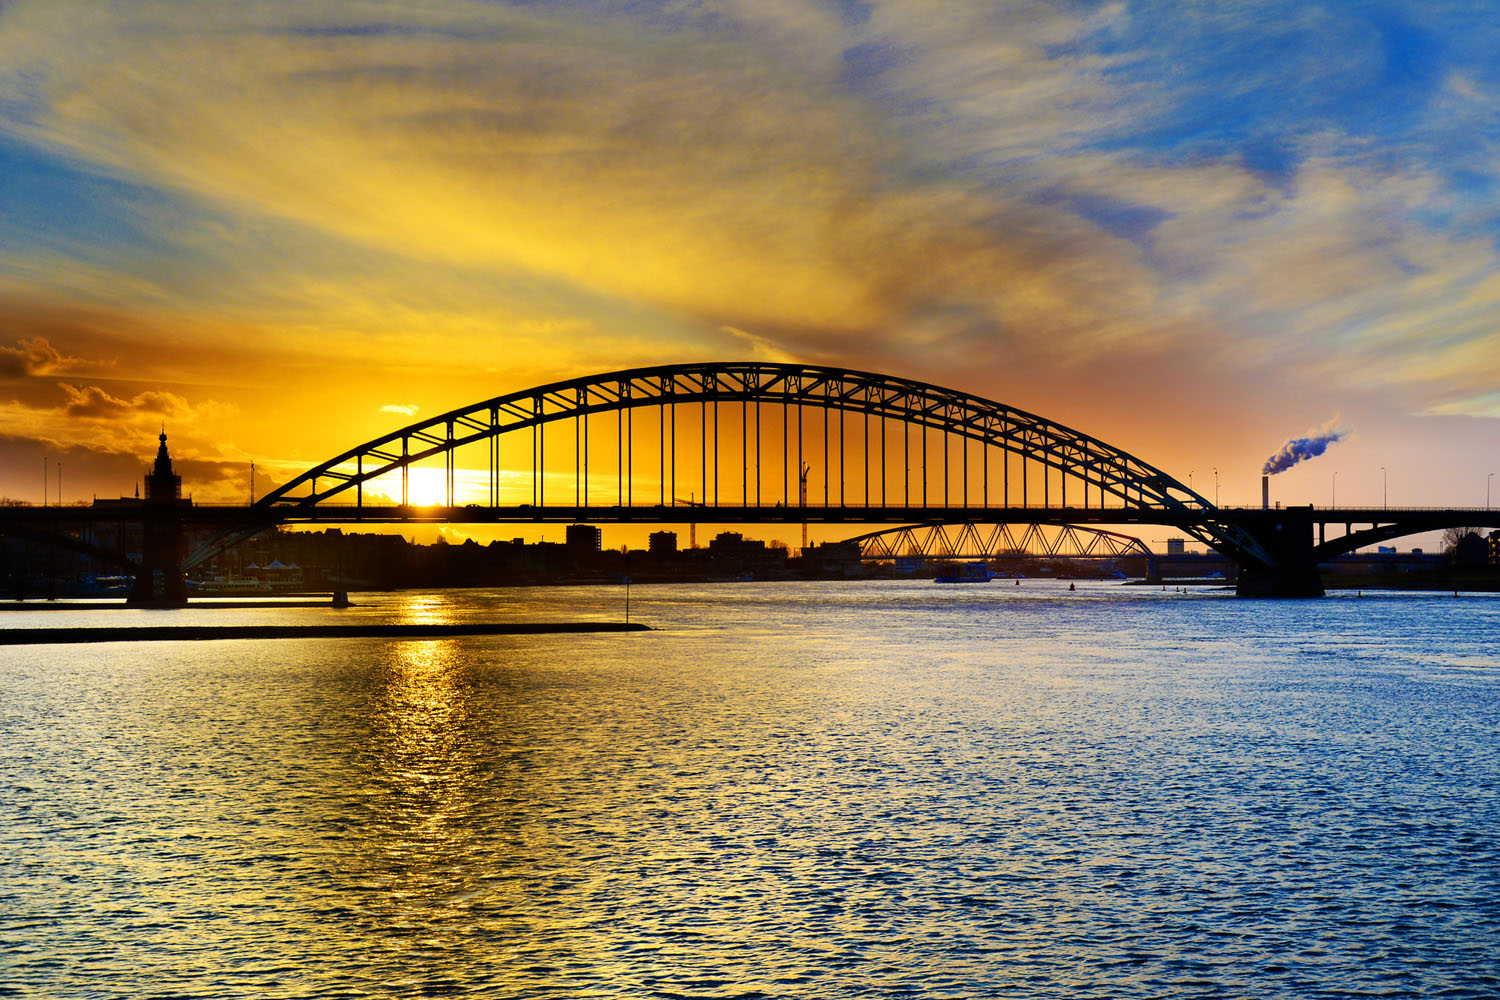 The Waal river at Nijmegen (photo:flickr/nilsvanrooijen)